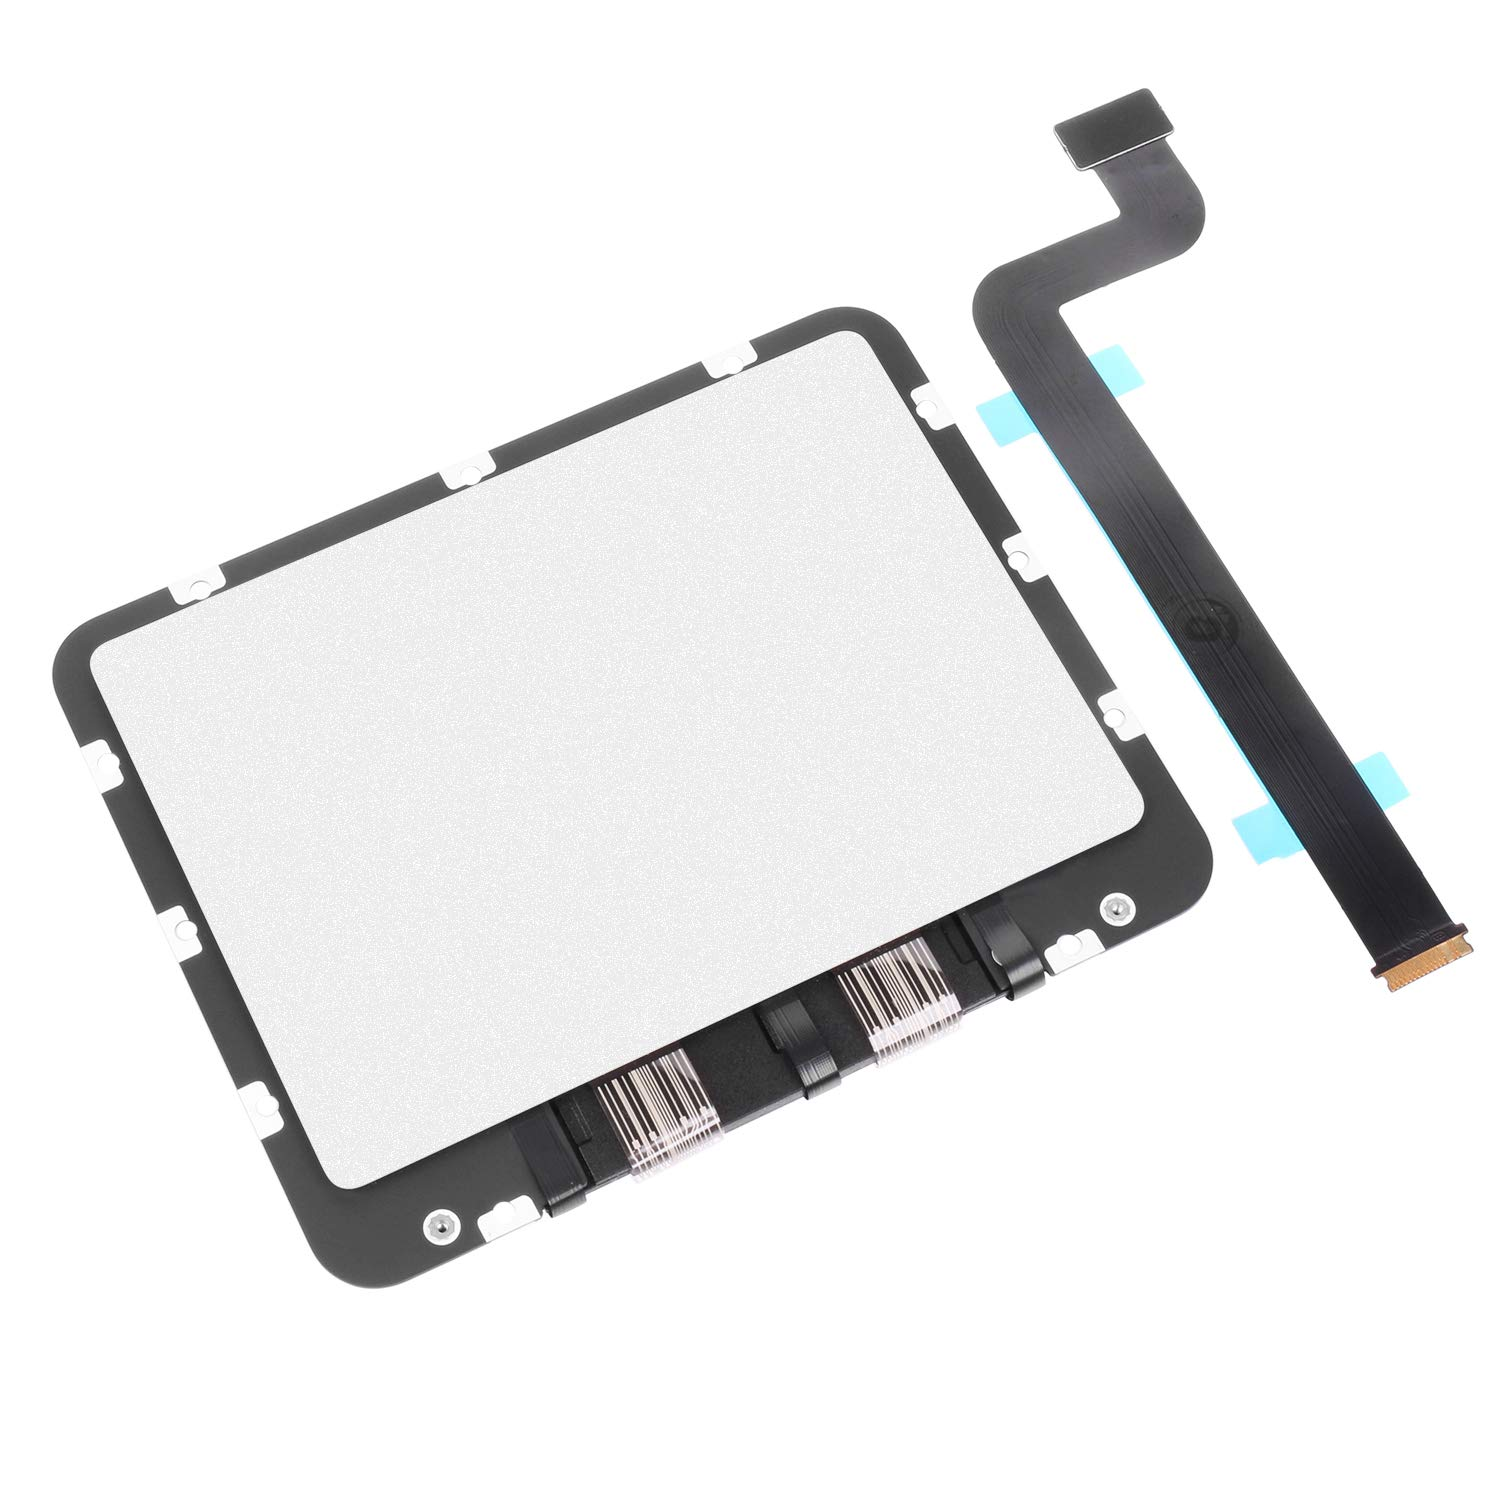 Li-SUN Trackpad (923-00541) with Flex Cable, Touchpad Replacement for Apple MacBook Pro Retina 15'' A1398 (Mid 2015 Version) by Li-SUN